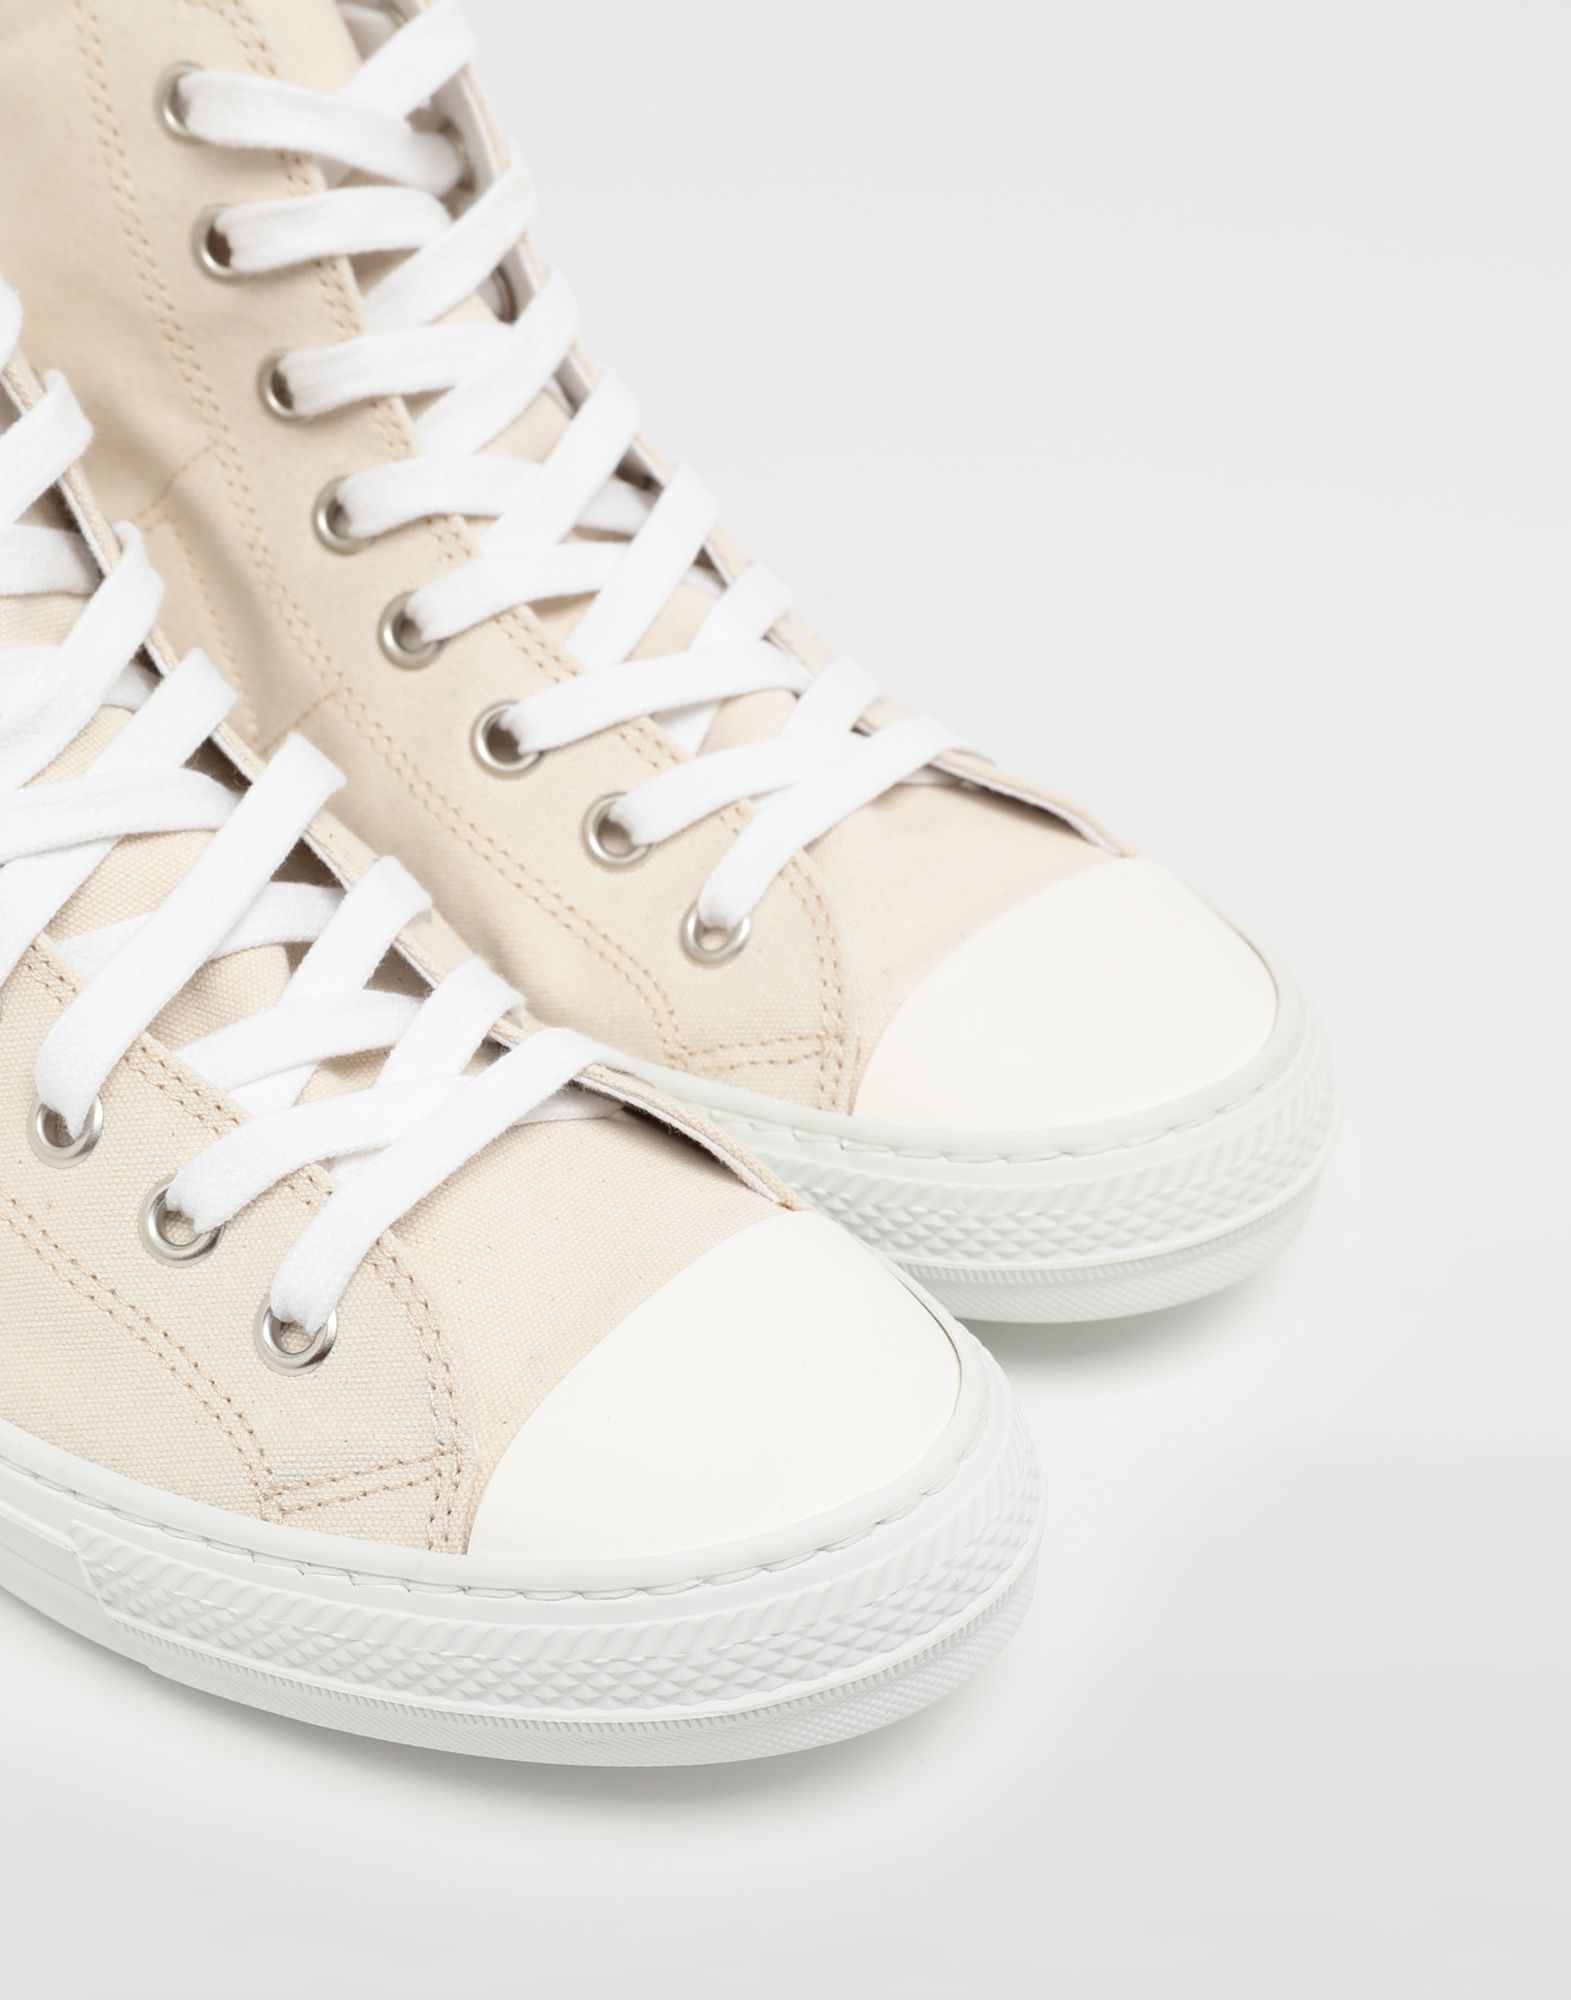 MAISON MARGIELA Stereotype high top sneakers Sneakers Man a